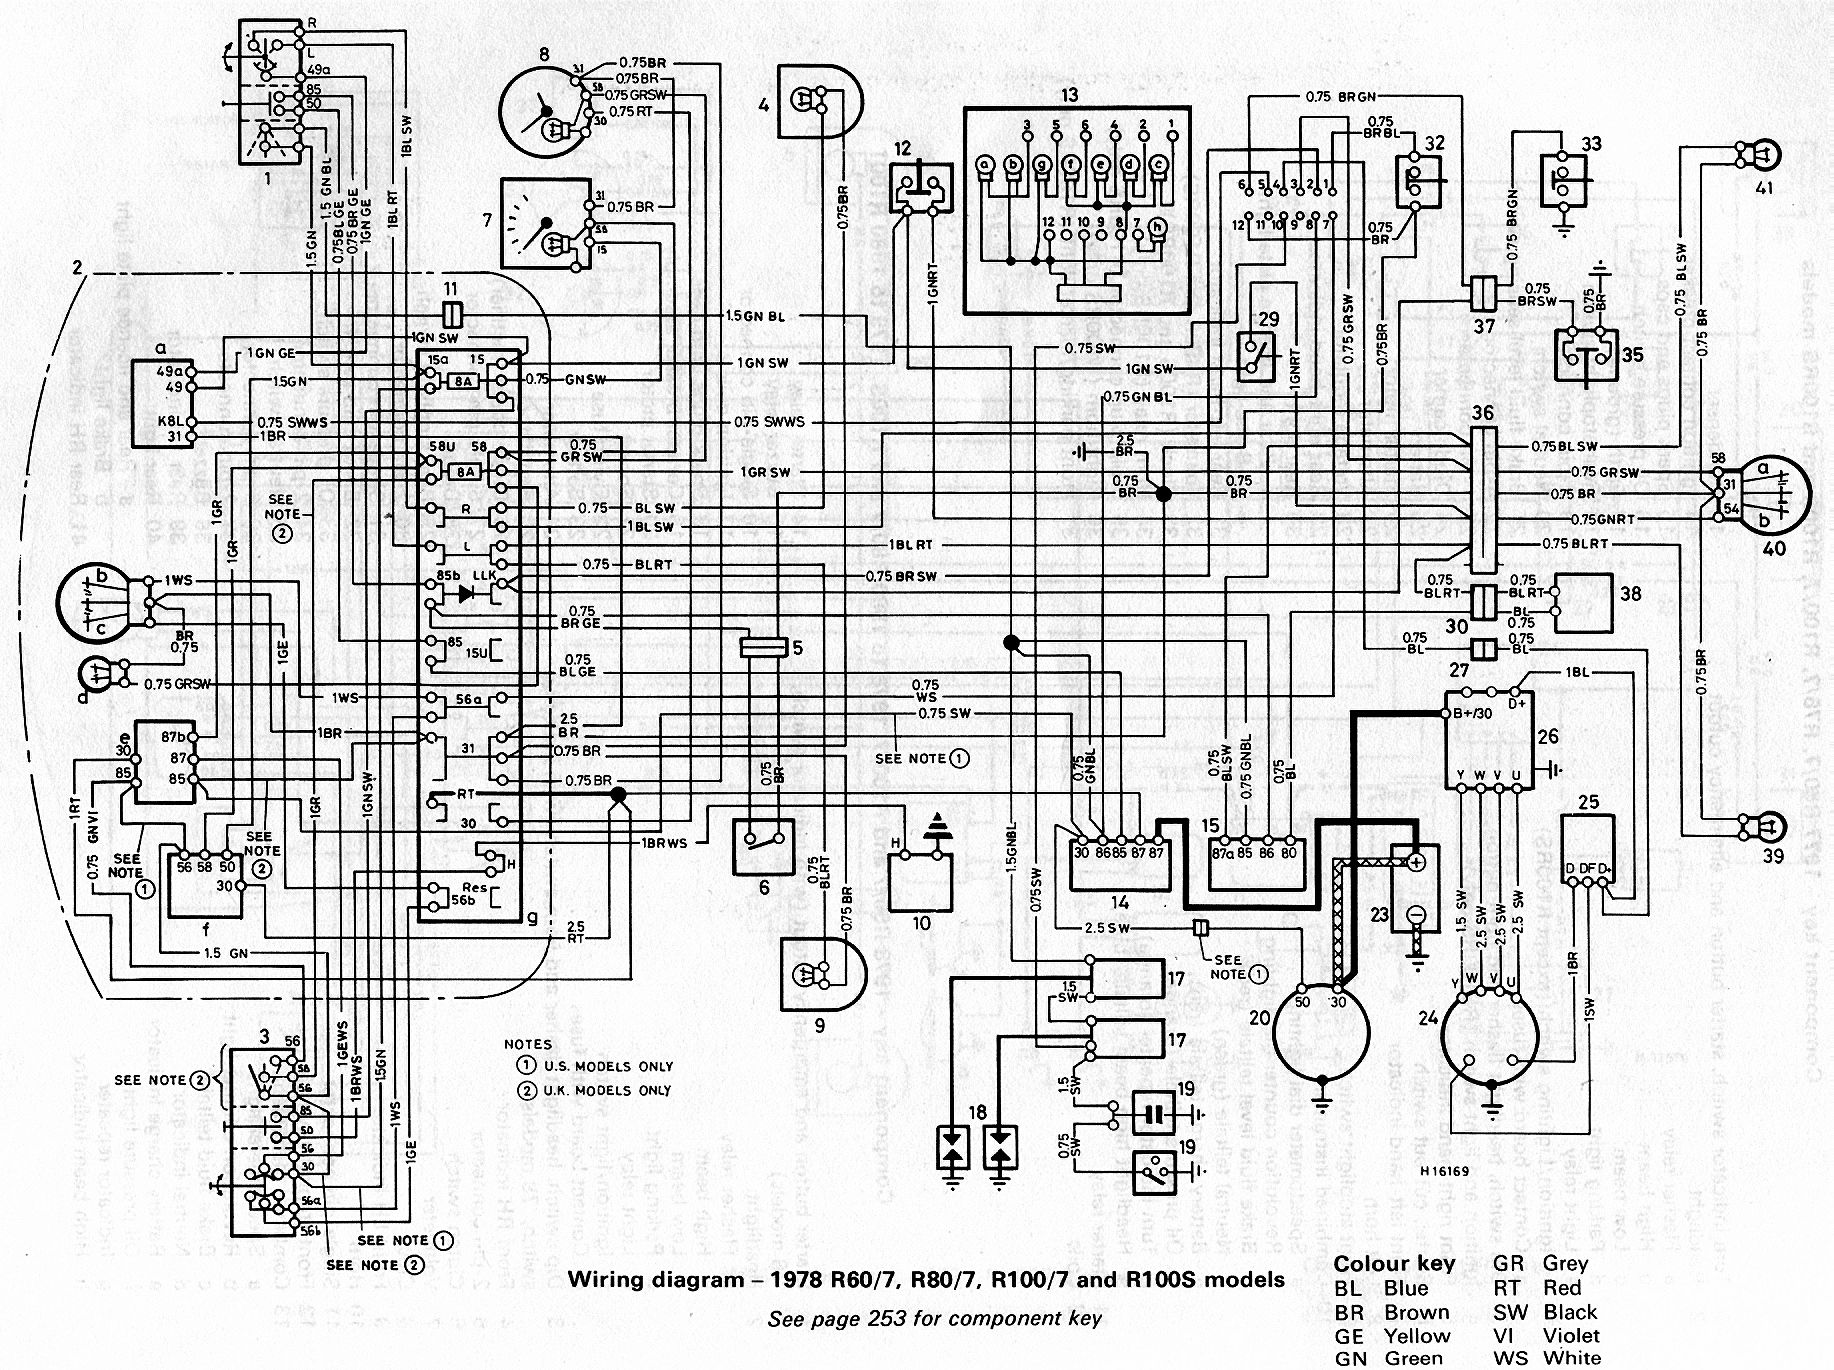 bmw 1984 r80/7 wiring diagram | chassis wire harness bmw r airhead r60 r75  r80 r100 61 11 1 likewise